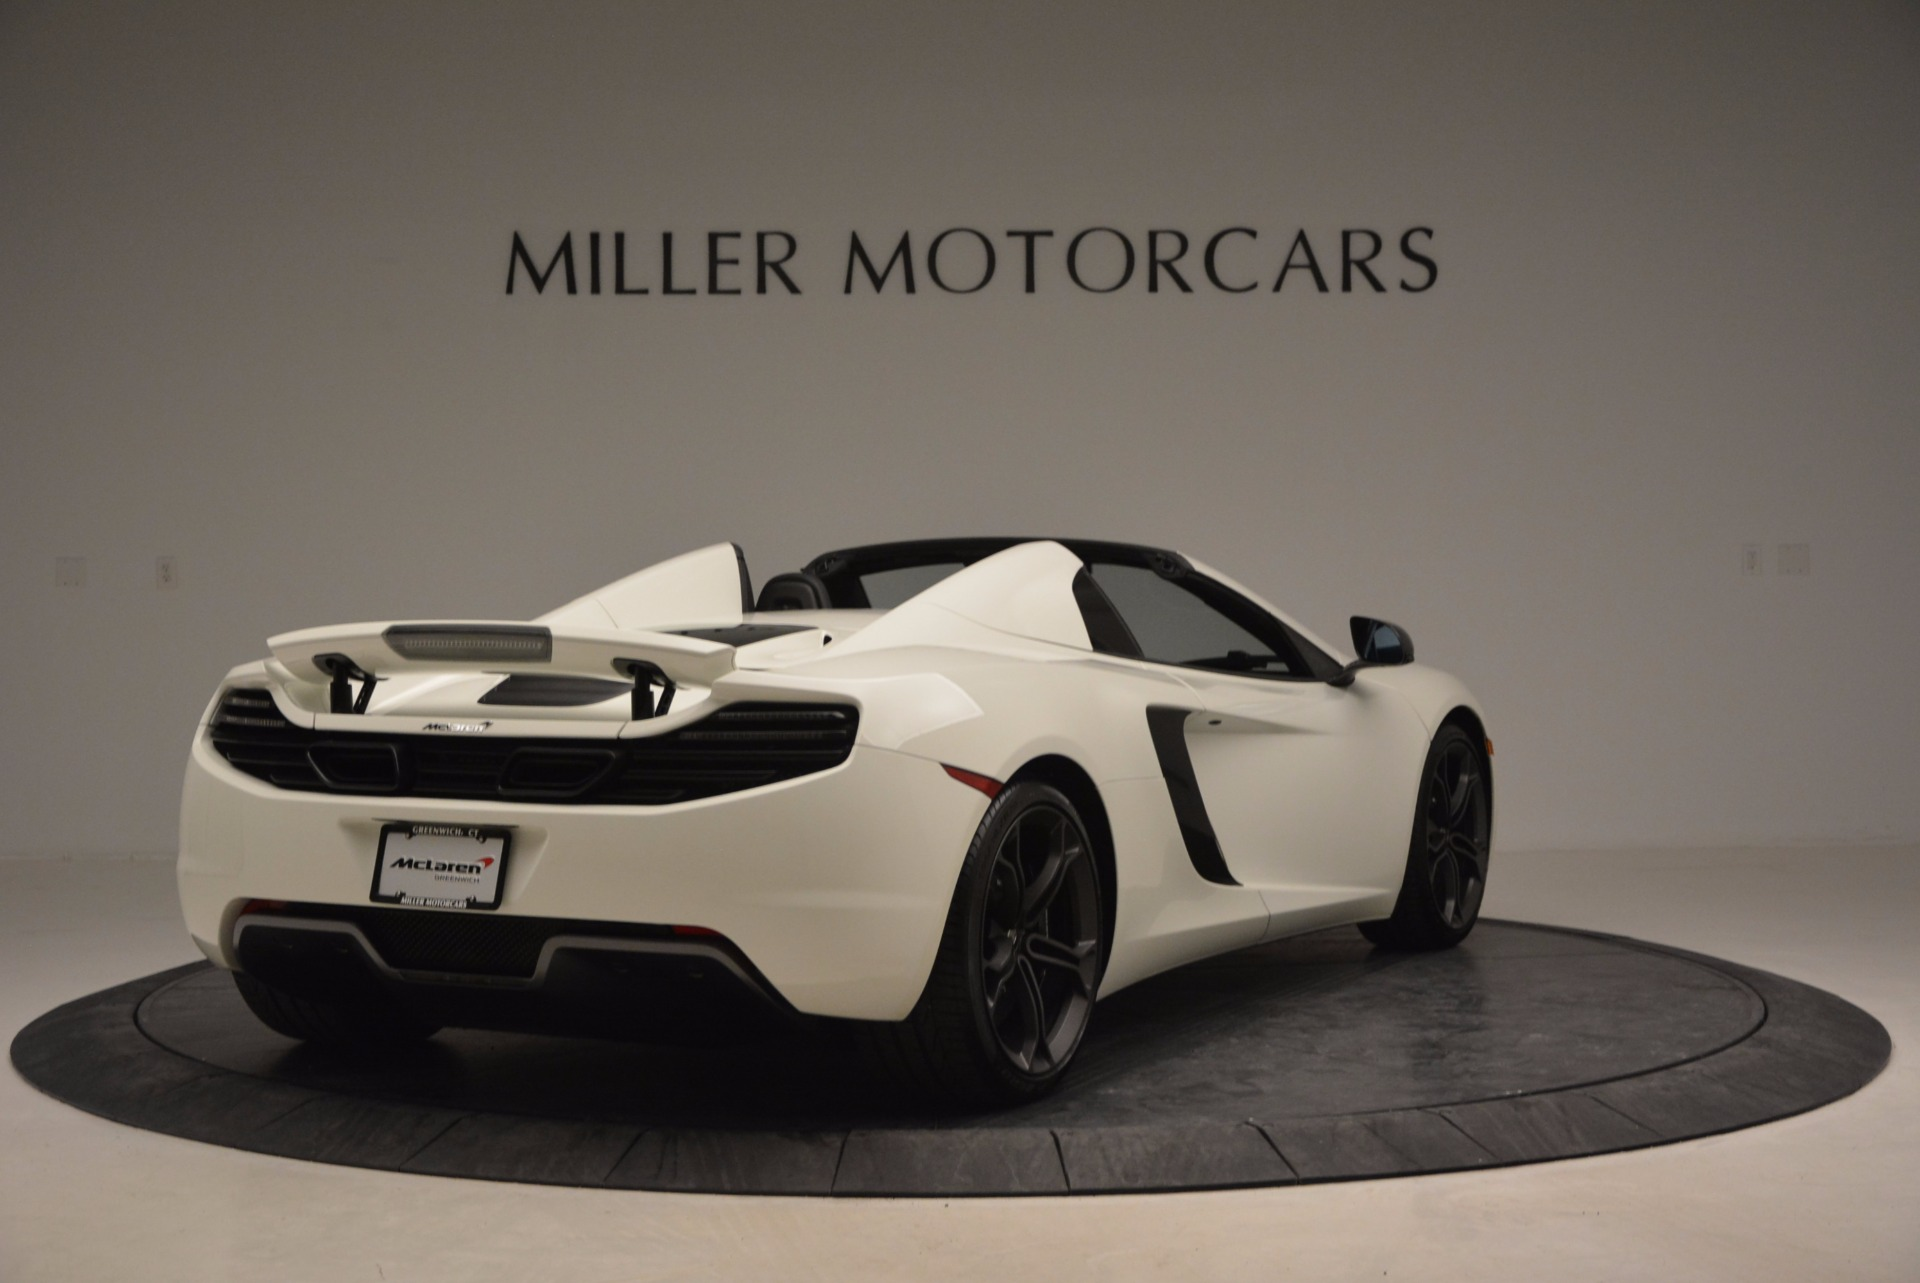 Used 2014 McLaren MP4-12C Spider For Sale In Greenwich, CT. Alfa Romeo of Greenwich, 3136 908_p7